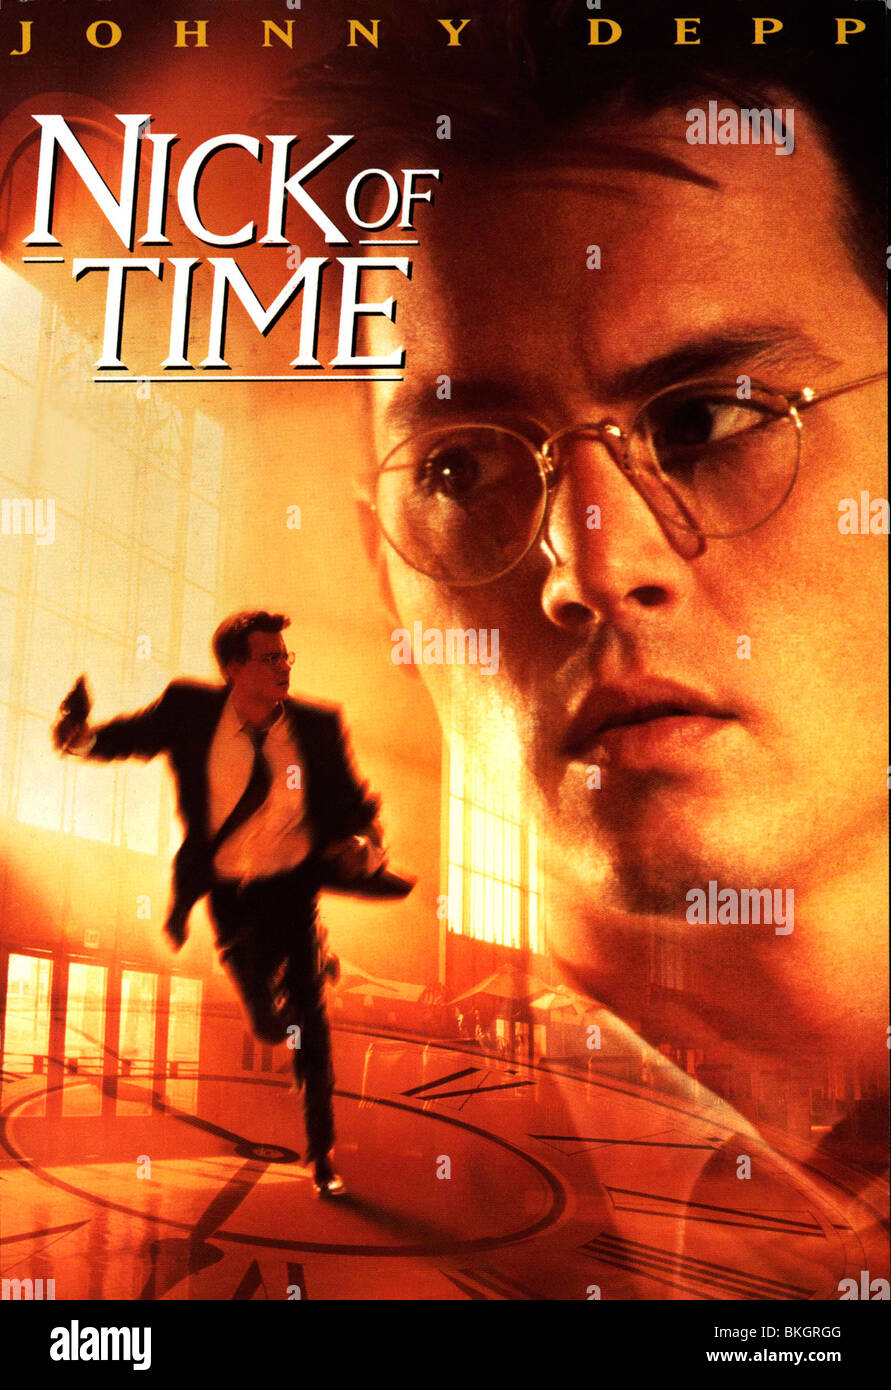 NICK OF TIME -1995 POSTER - Stock Image